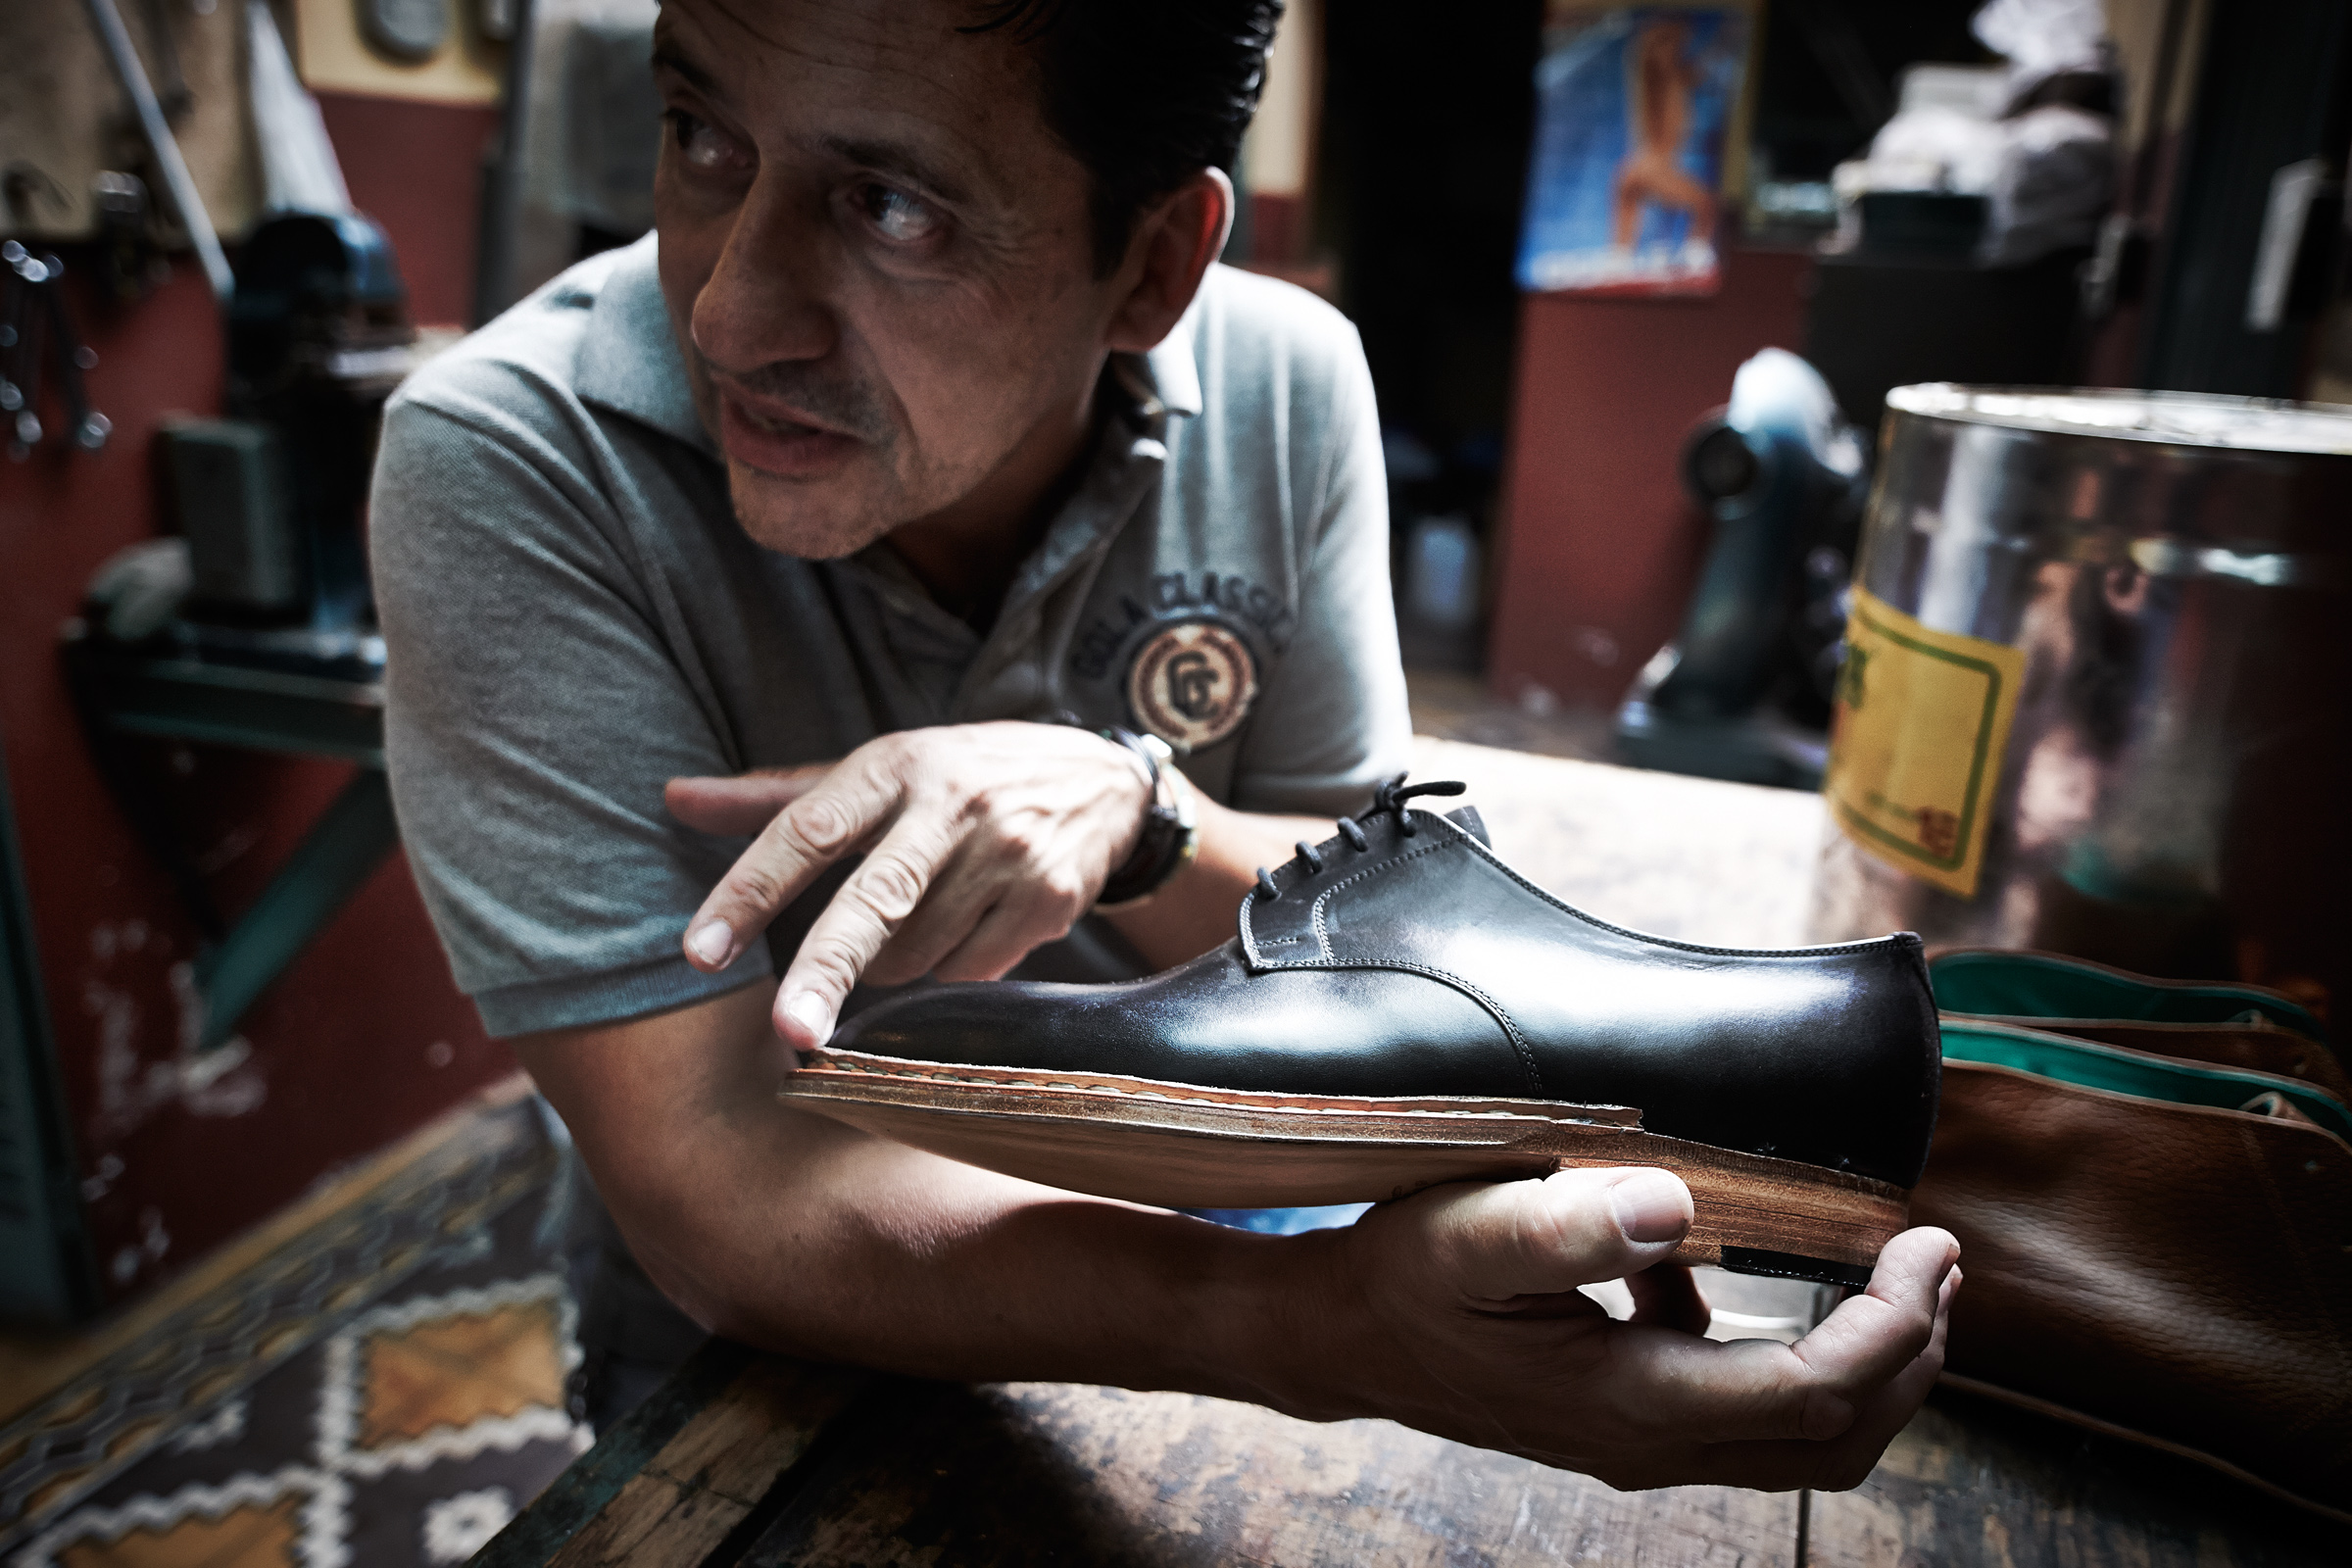 Dani with one of a half-made pair of shoes, Buenos Aires, Argentina (Photo: Anatol Kotte/The Other Hundred)